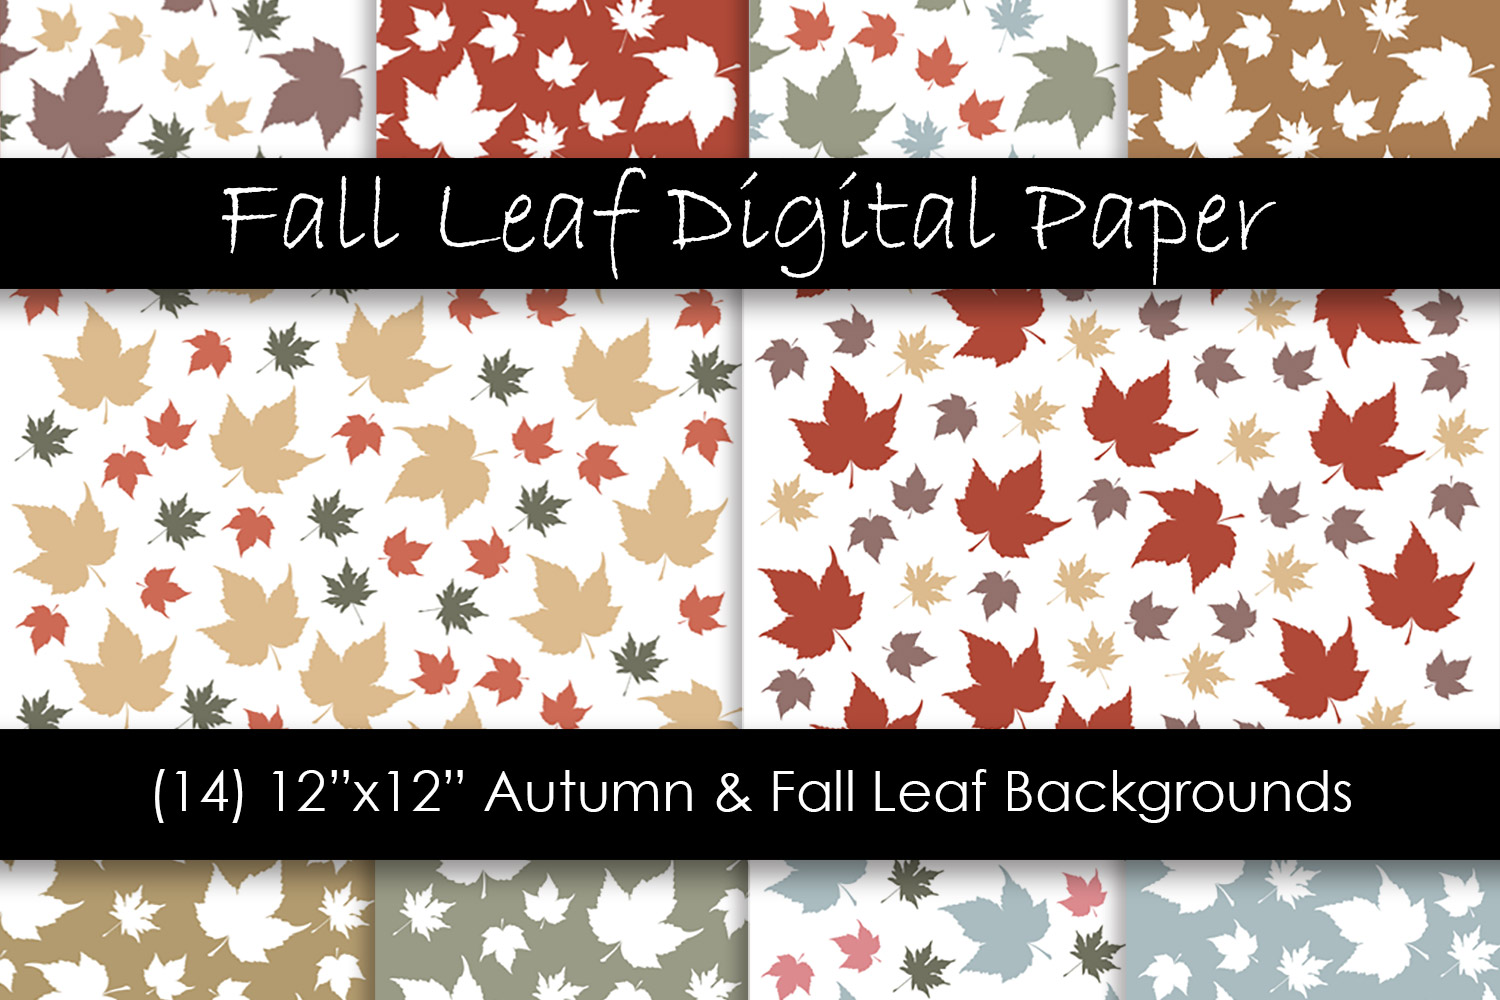 Autumn & Fall Leaf Backgrounds - Fall Leaf Patterns example image 1